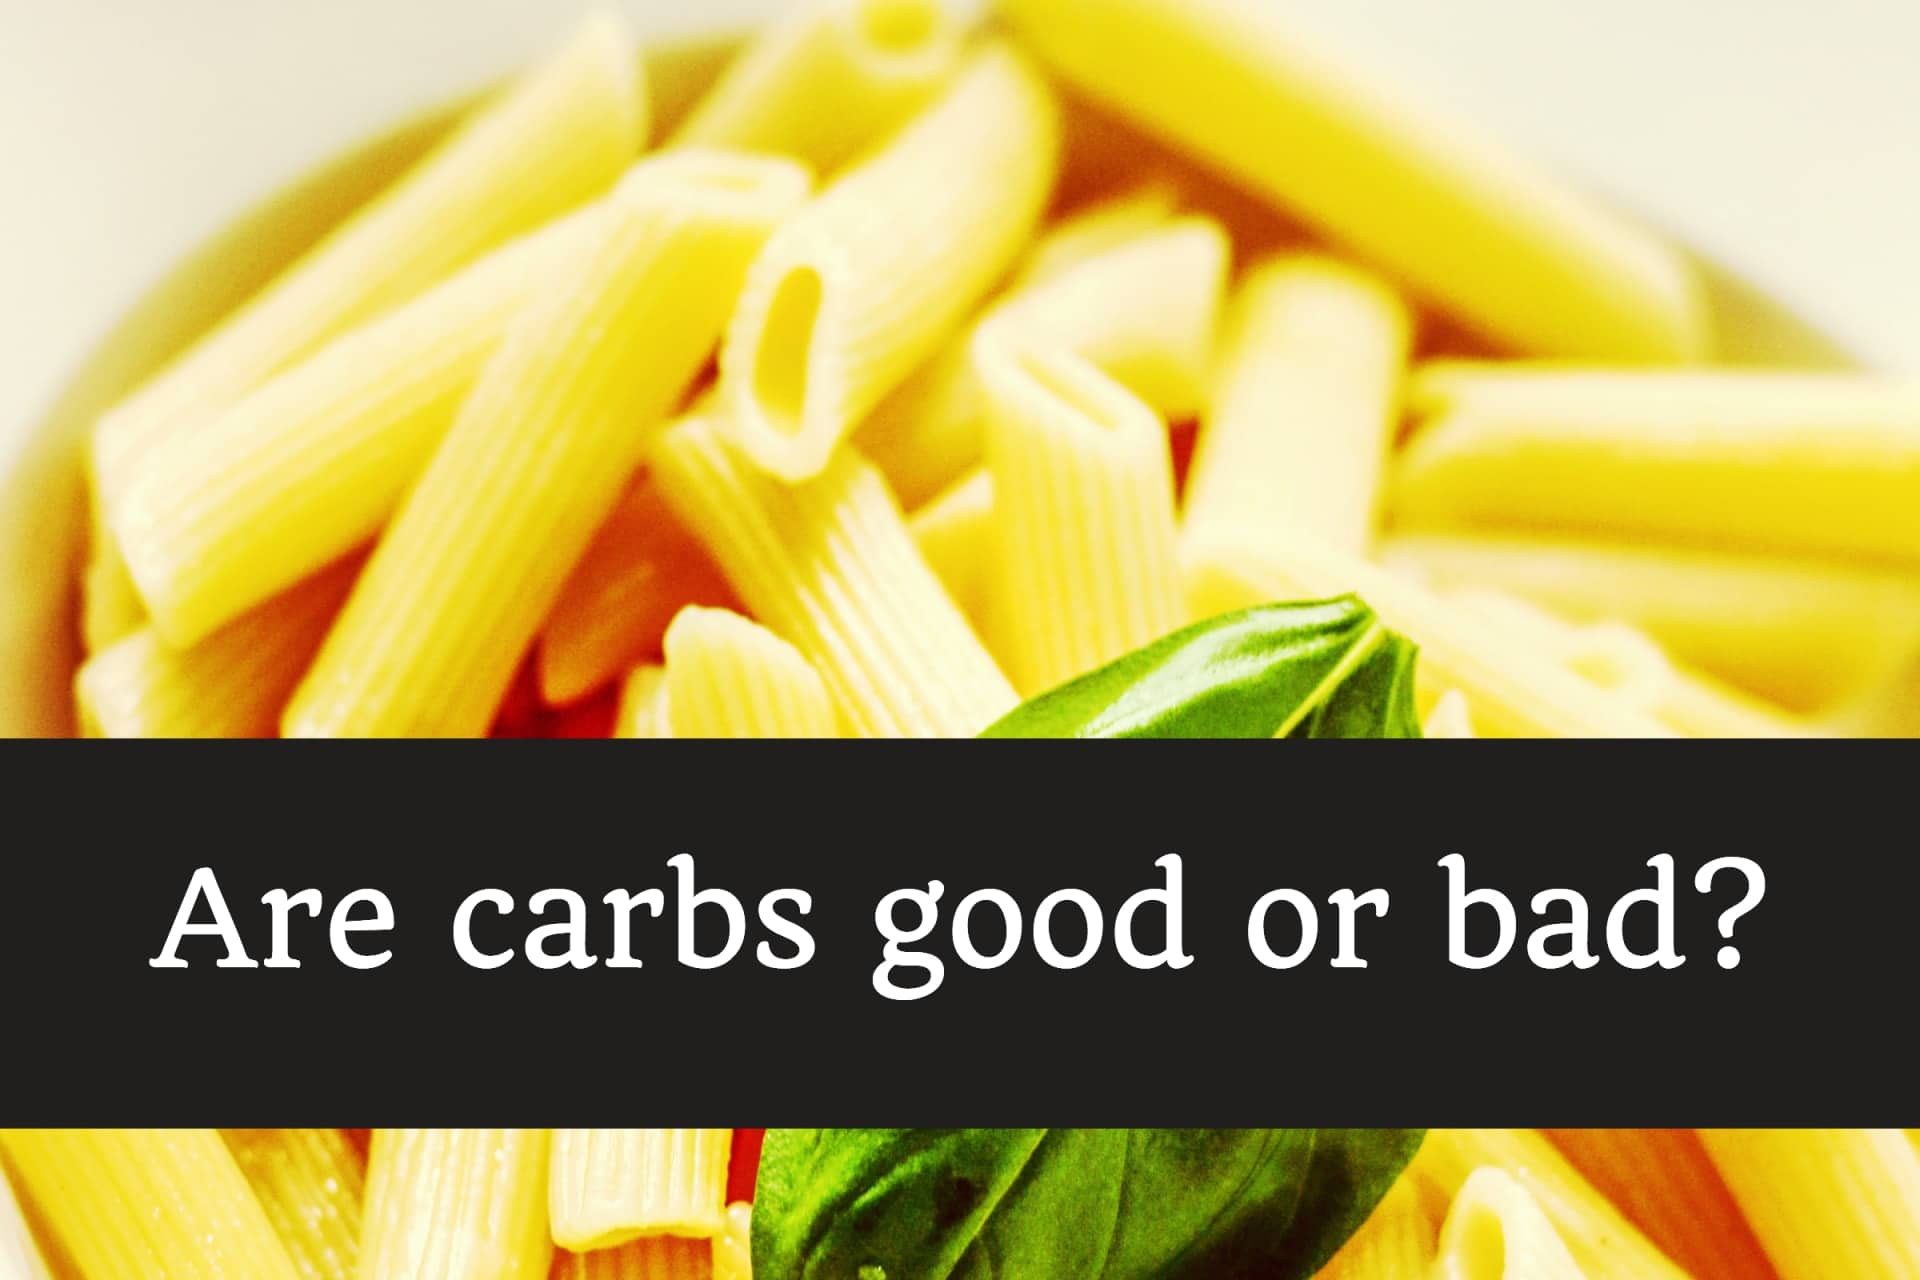 Are carbs good or bad?